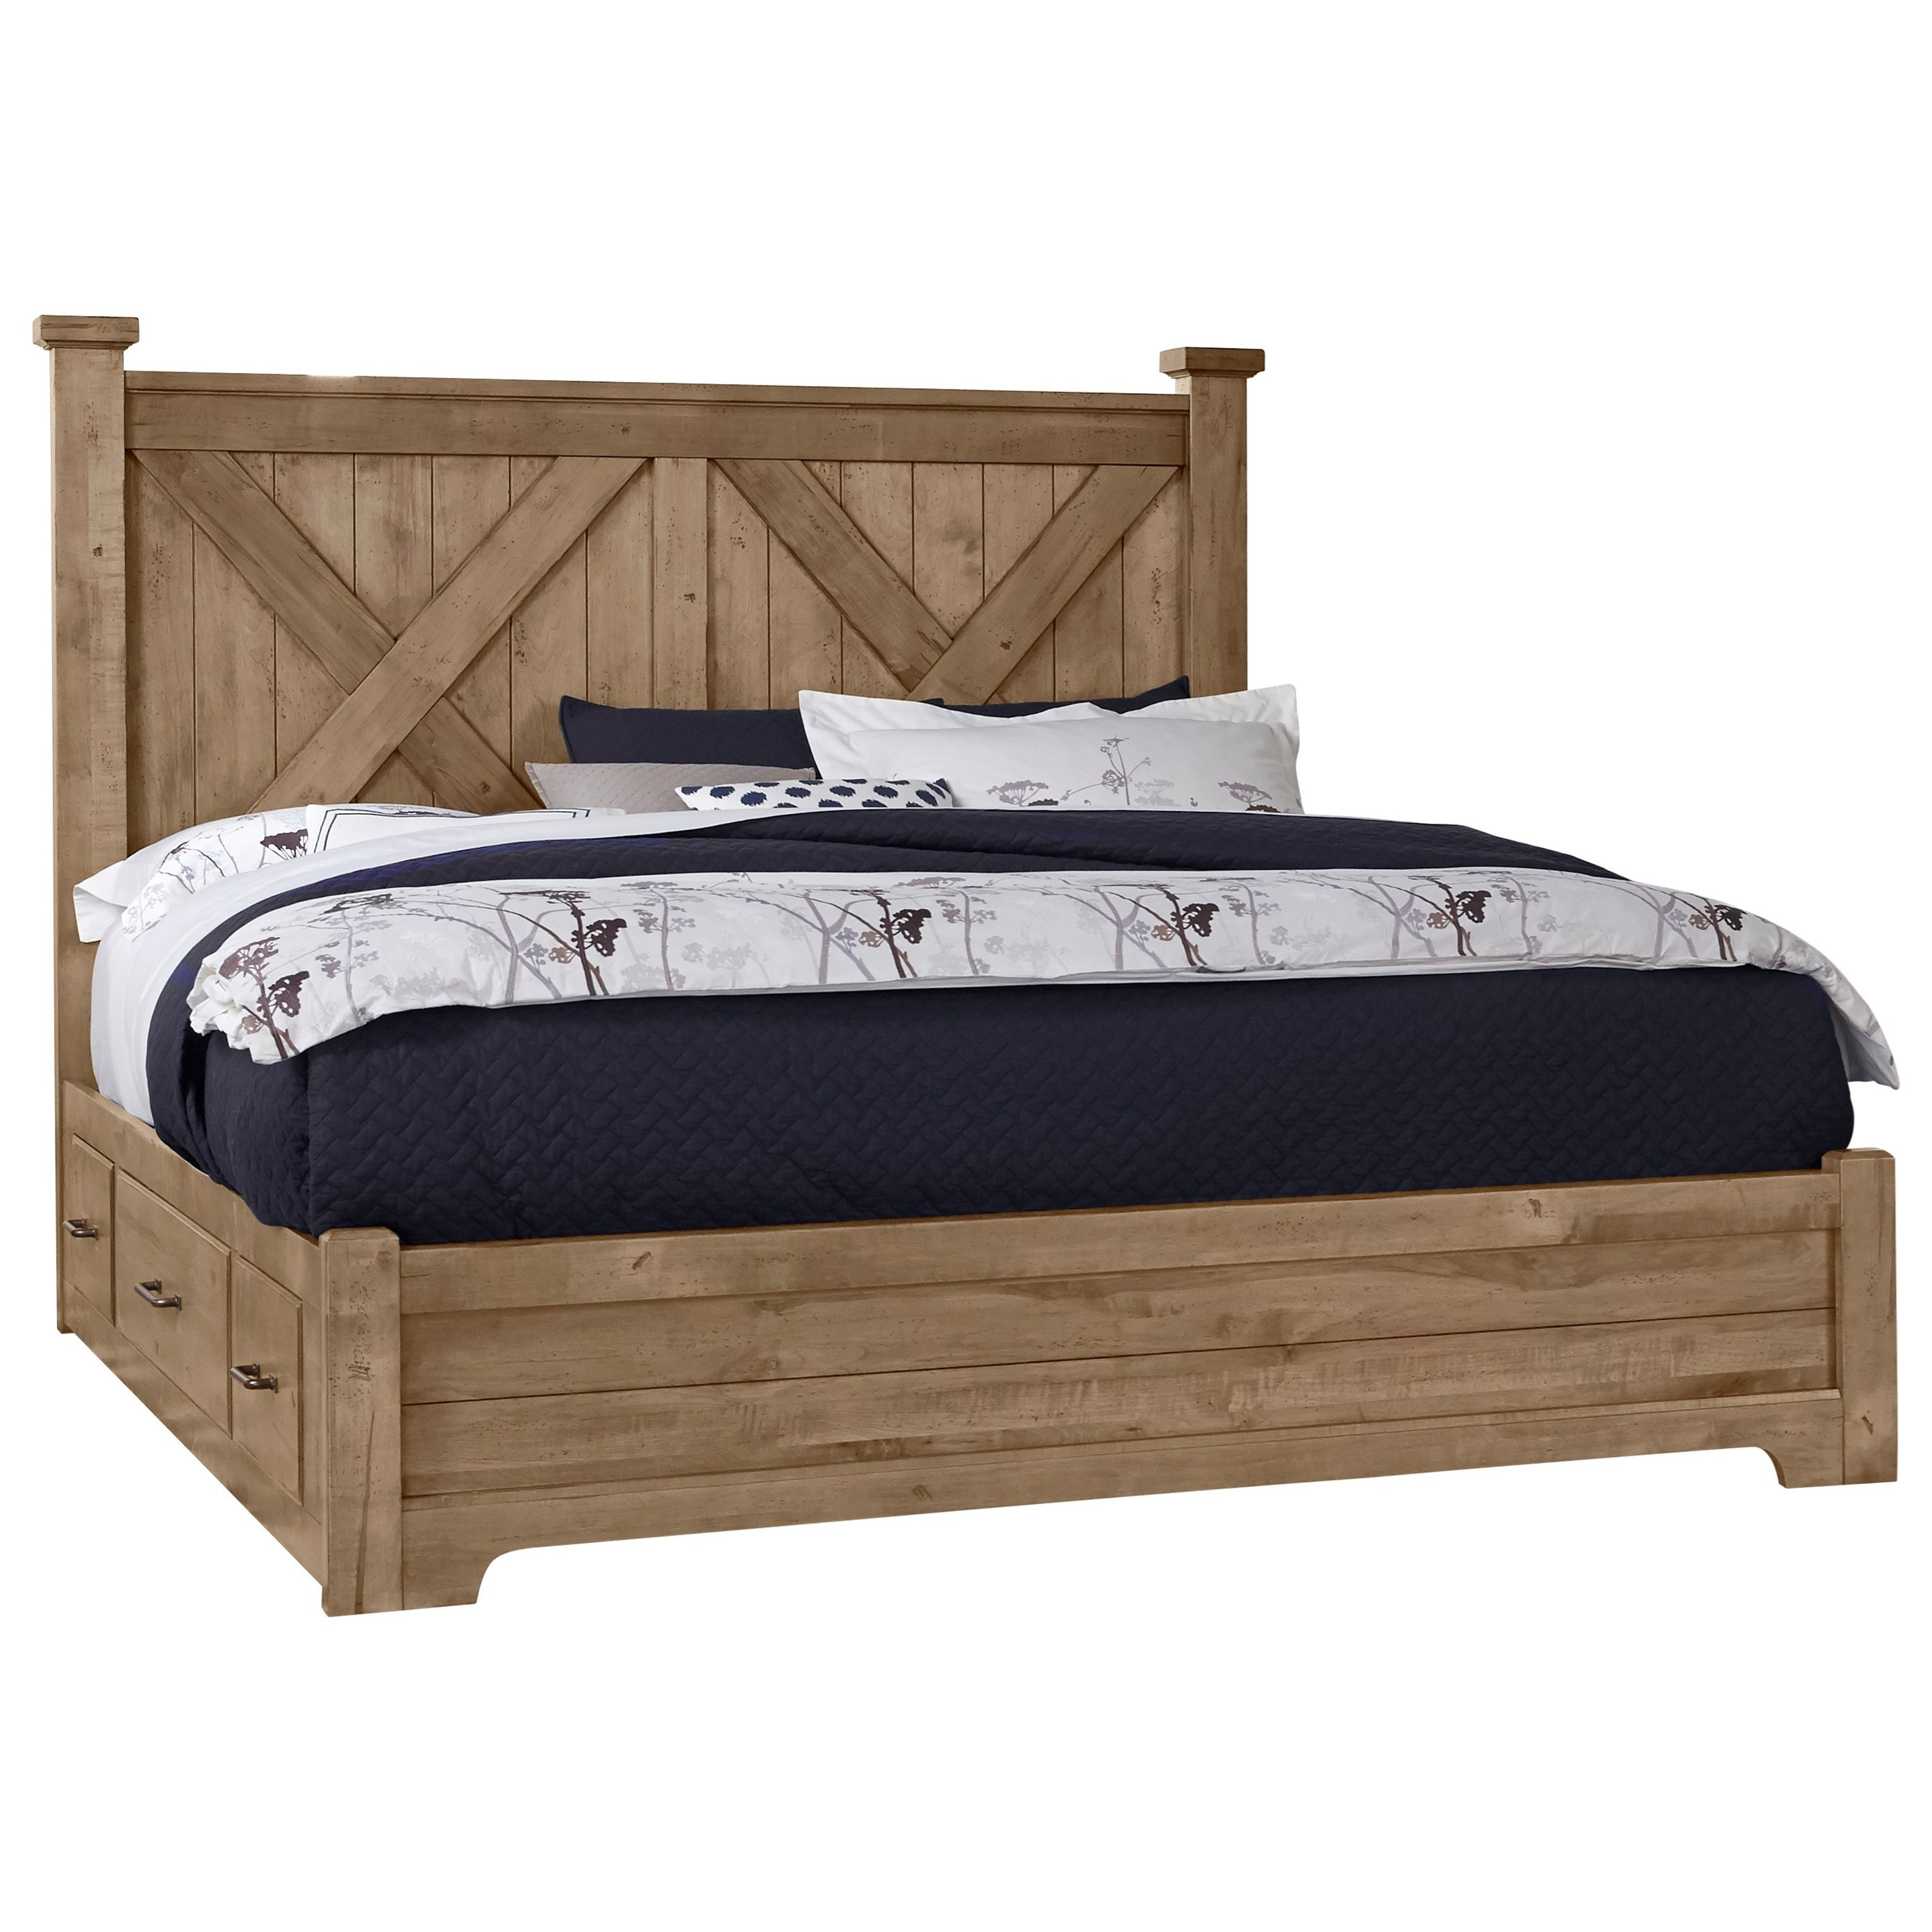 Cool Rustic King X Bed With Double Side Storage by Artisan & Post at Northeast Factory Direct